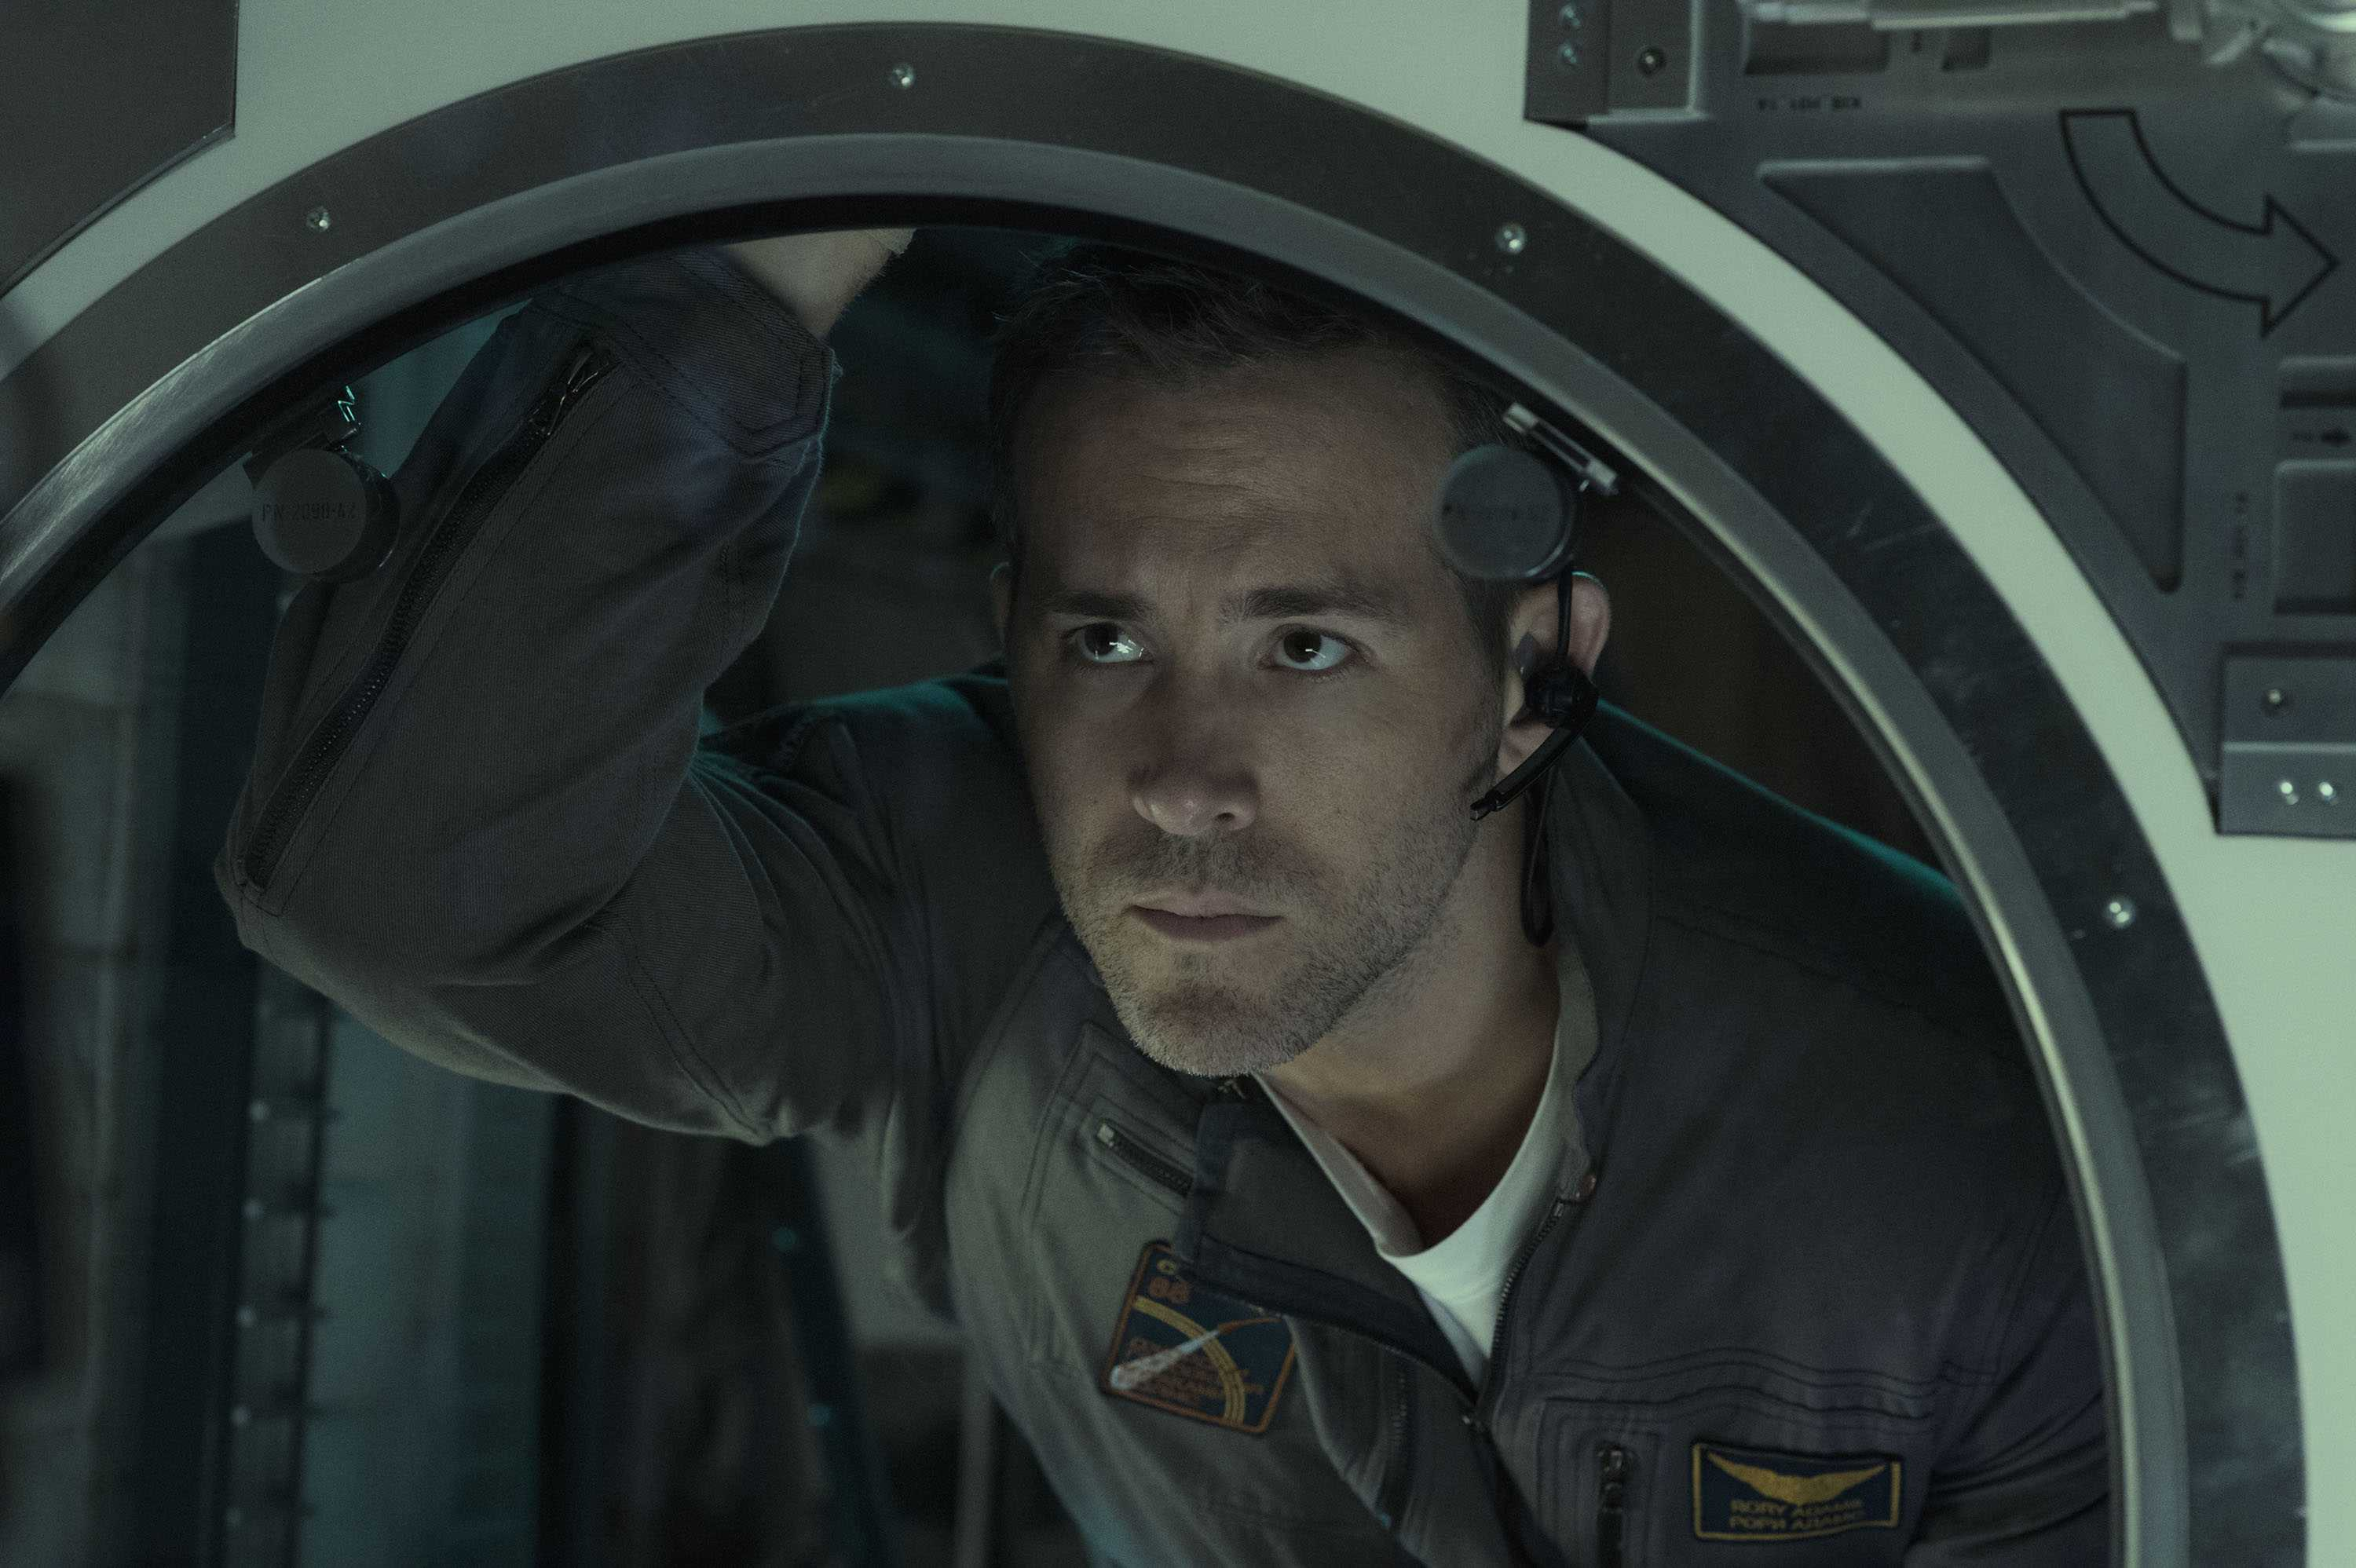 Ryan Reynolds as Rory Adams in a scene from the movie